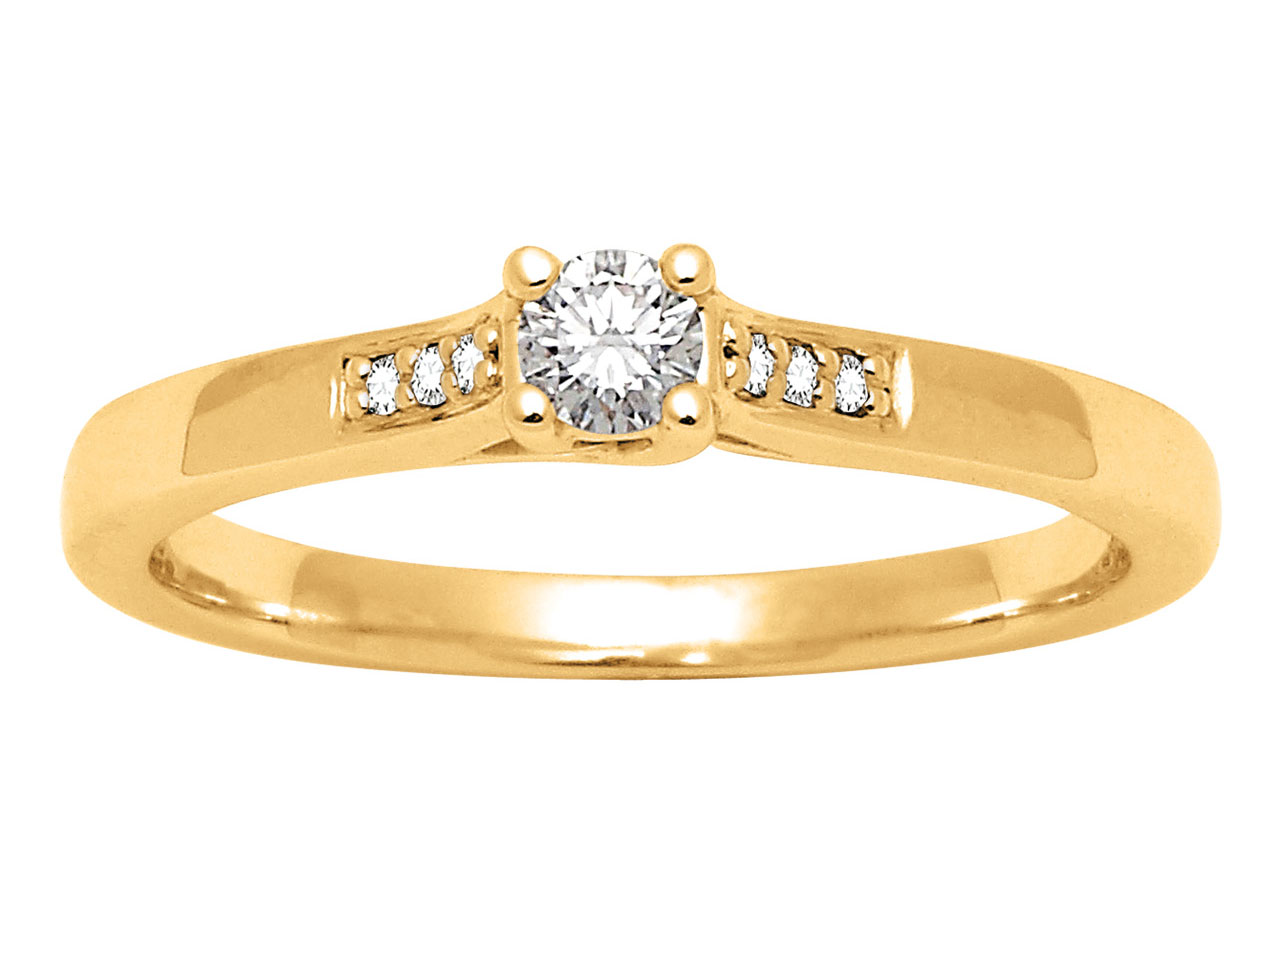 Solitaire accompagné, Or jaune18 k, Dts 0,13 ct, doigt 50